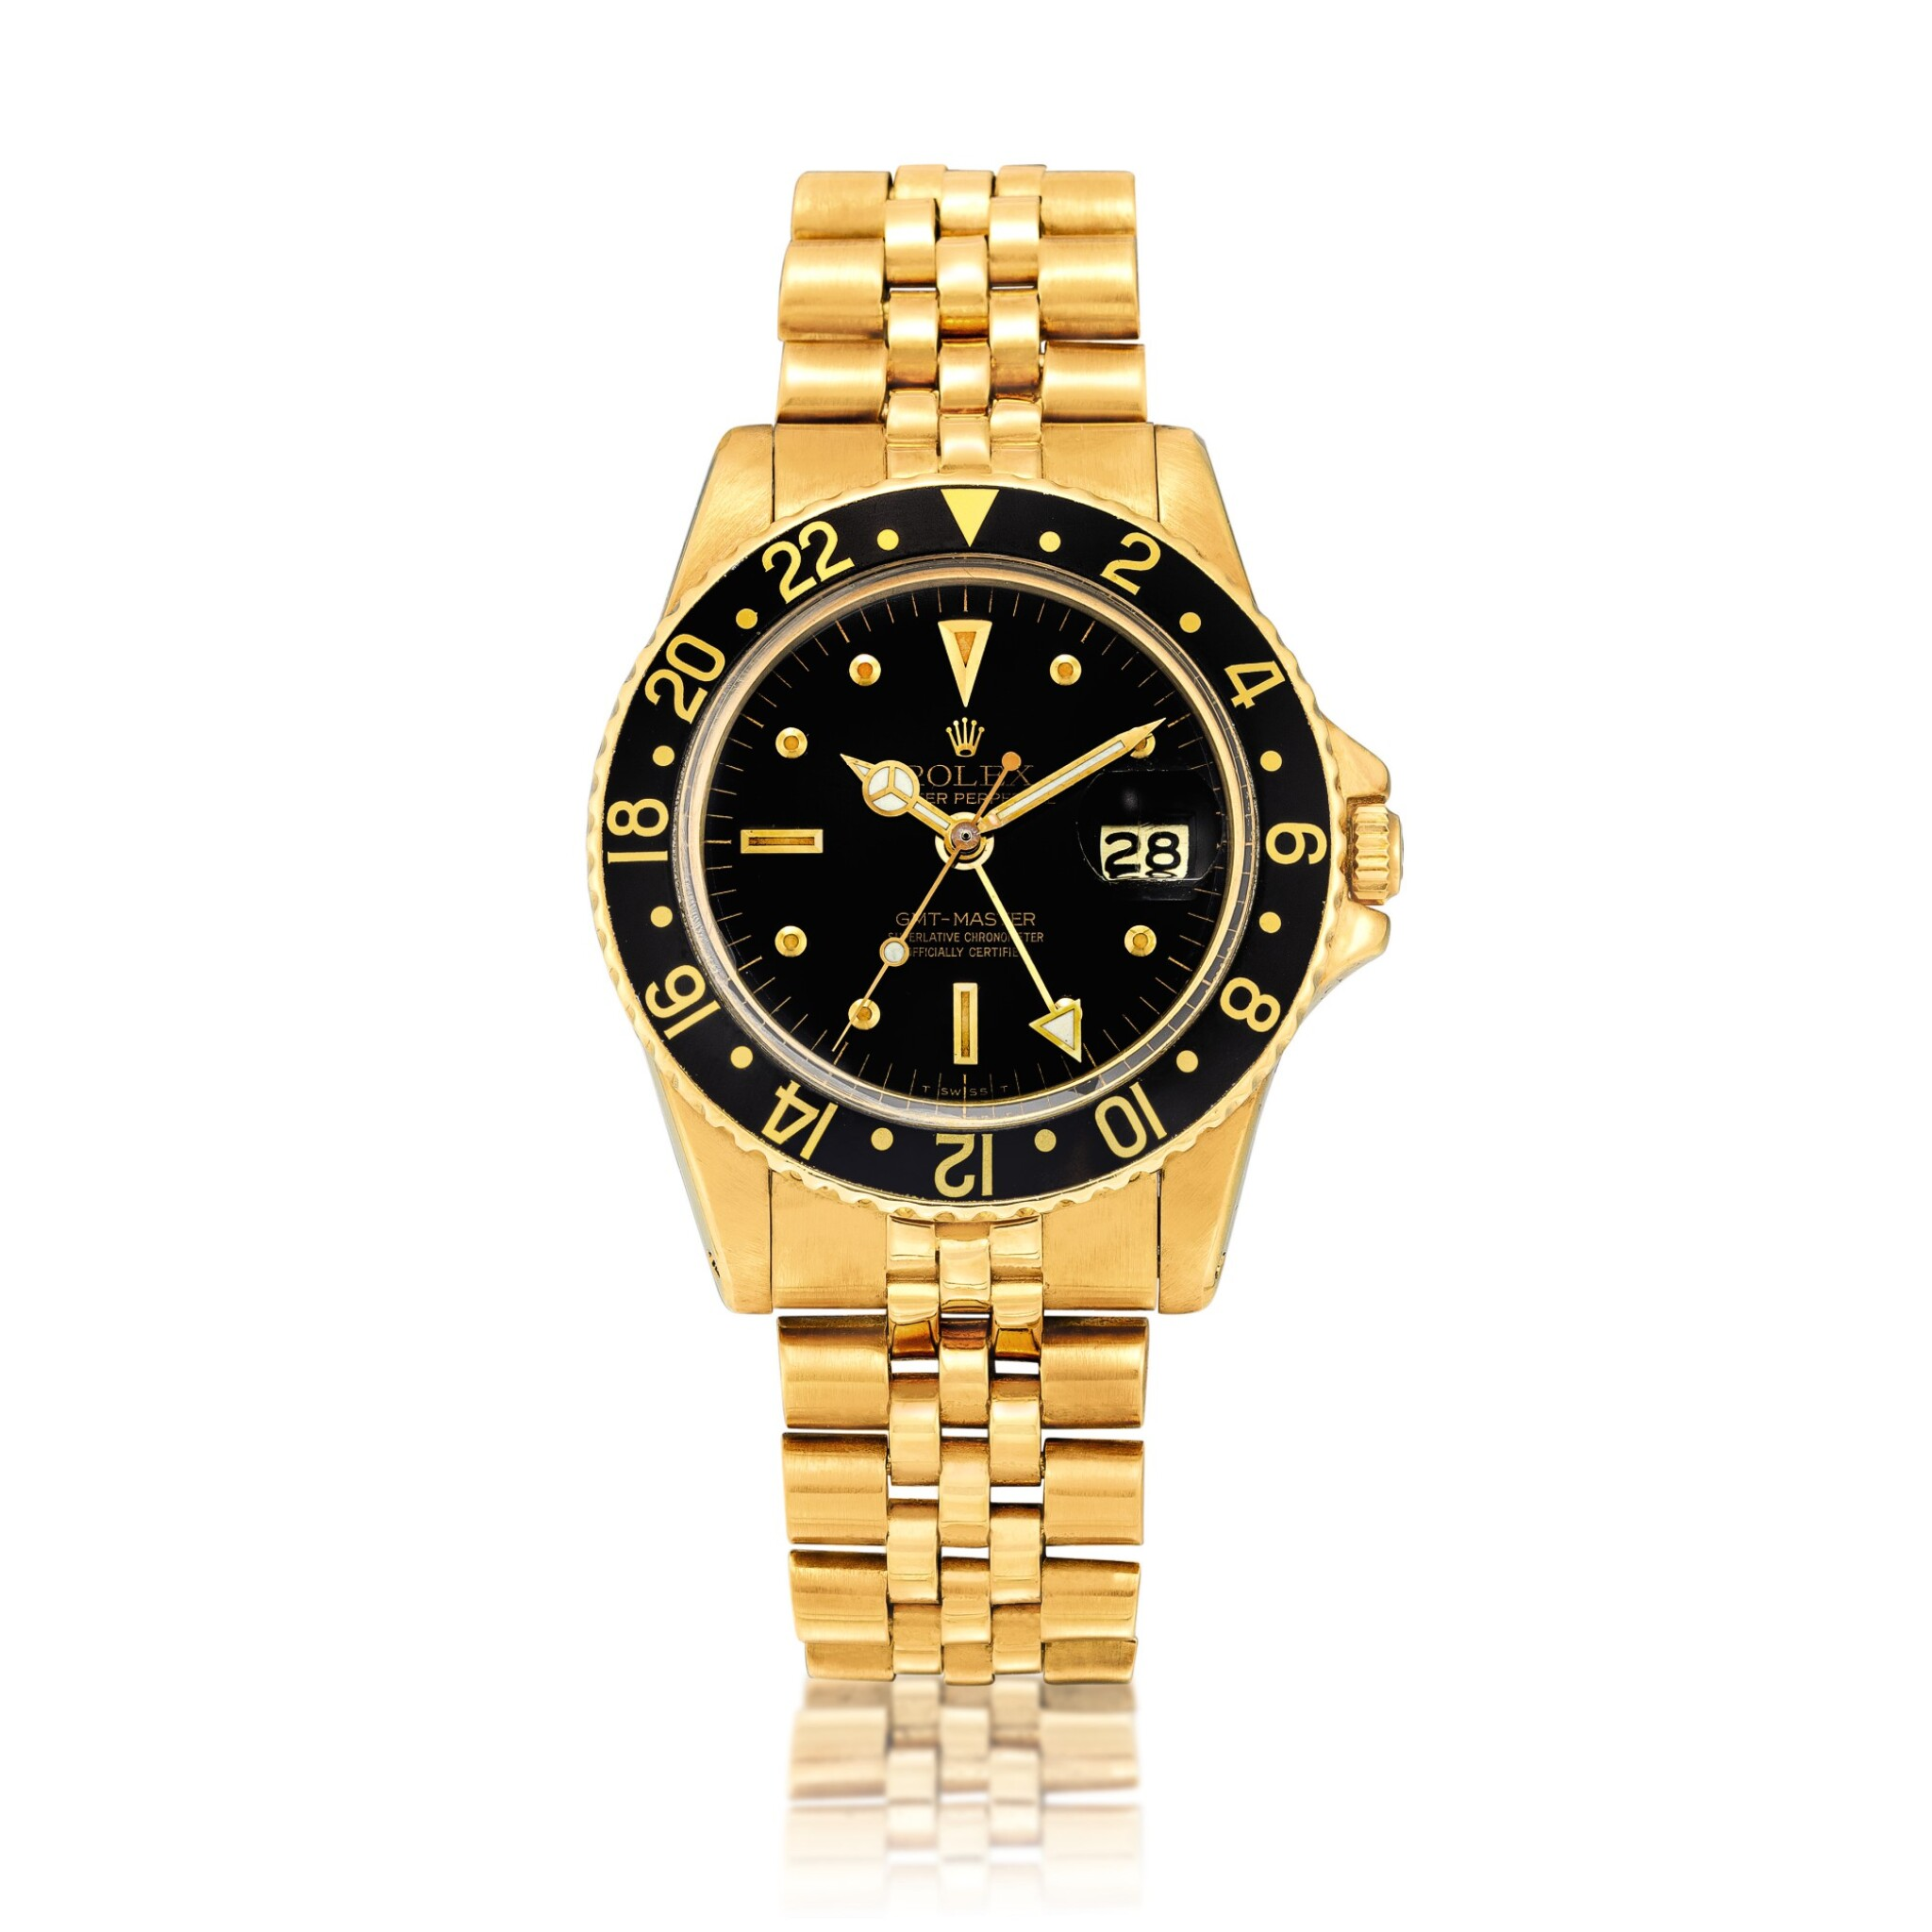 """View full screen - View 1 of Lot 2262. Rolex   GMT-Master II """"Nipple Dial"""", Reference 1675, A yellow gold dual time zone wristwatch with date and bracelet, Circa 1978   勞力士   GMT-Master II """"Nipple Dial"""" 型號1675  黃金兩地時間鏈帶腕錶,備日期顯示,約1978年製."""